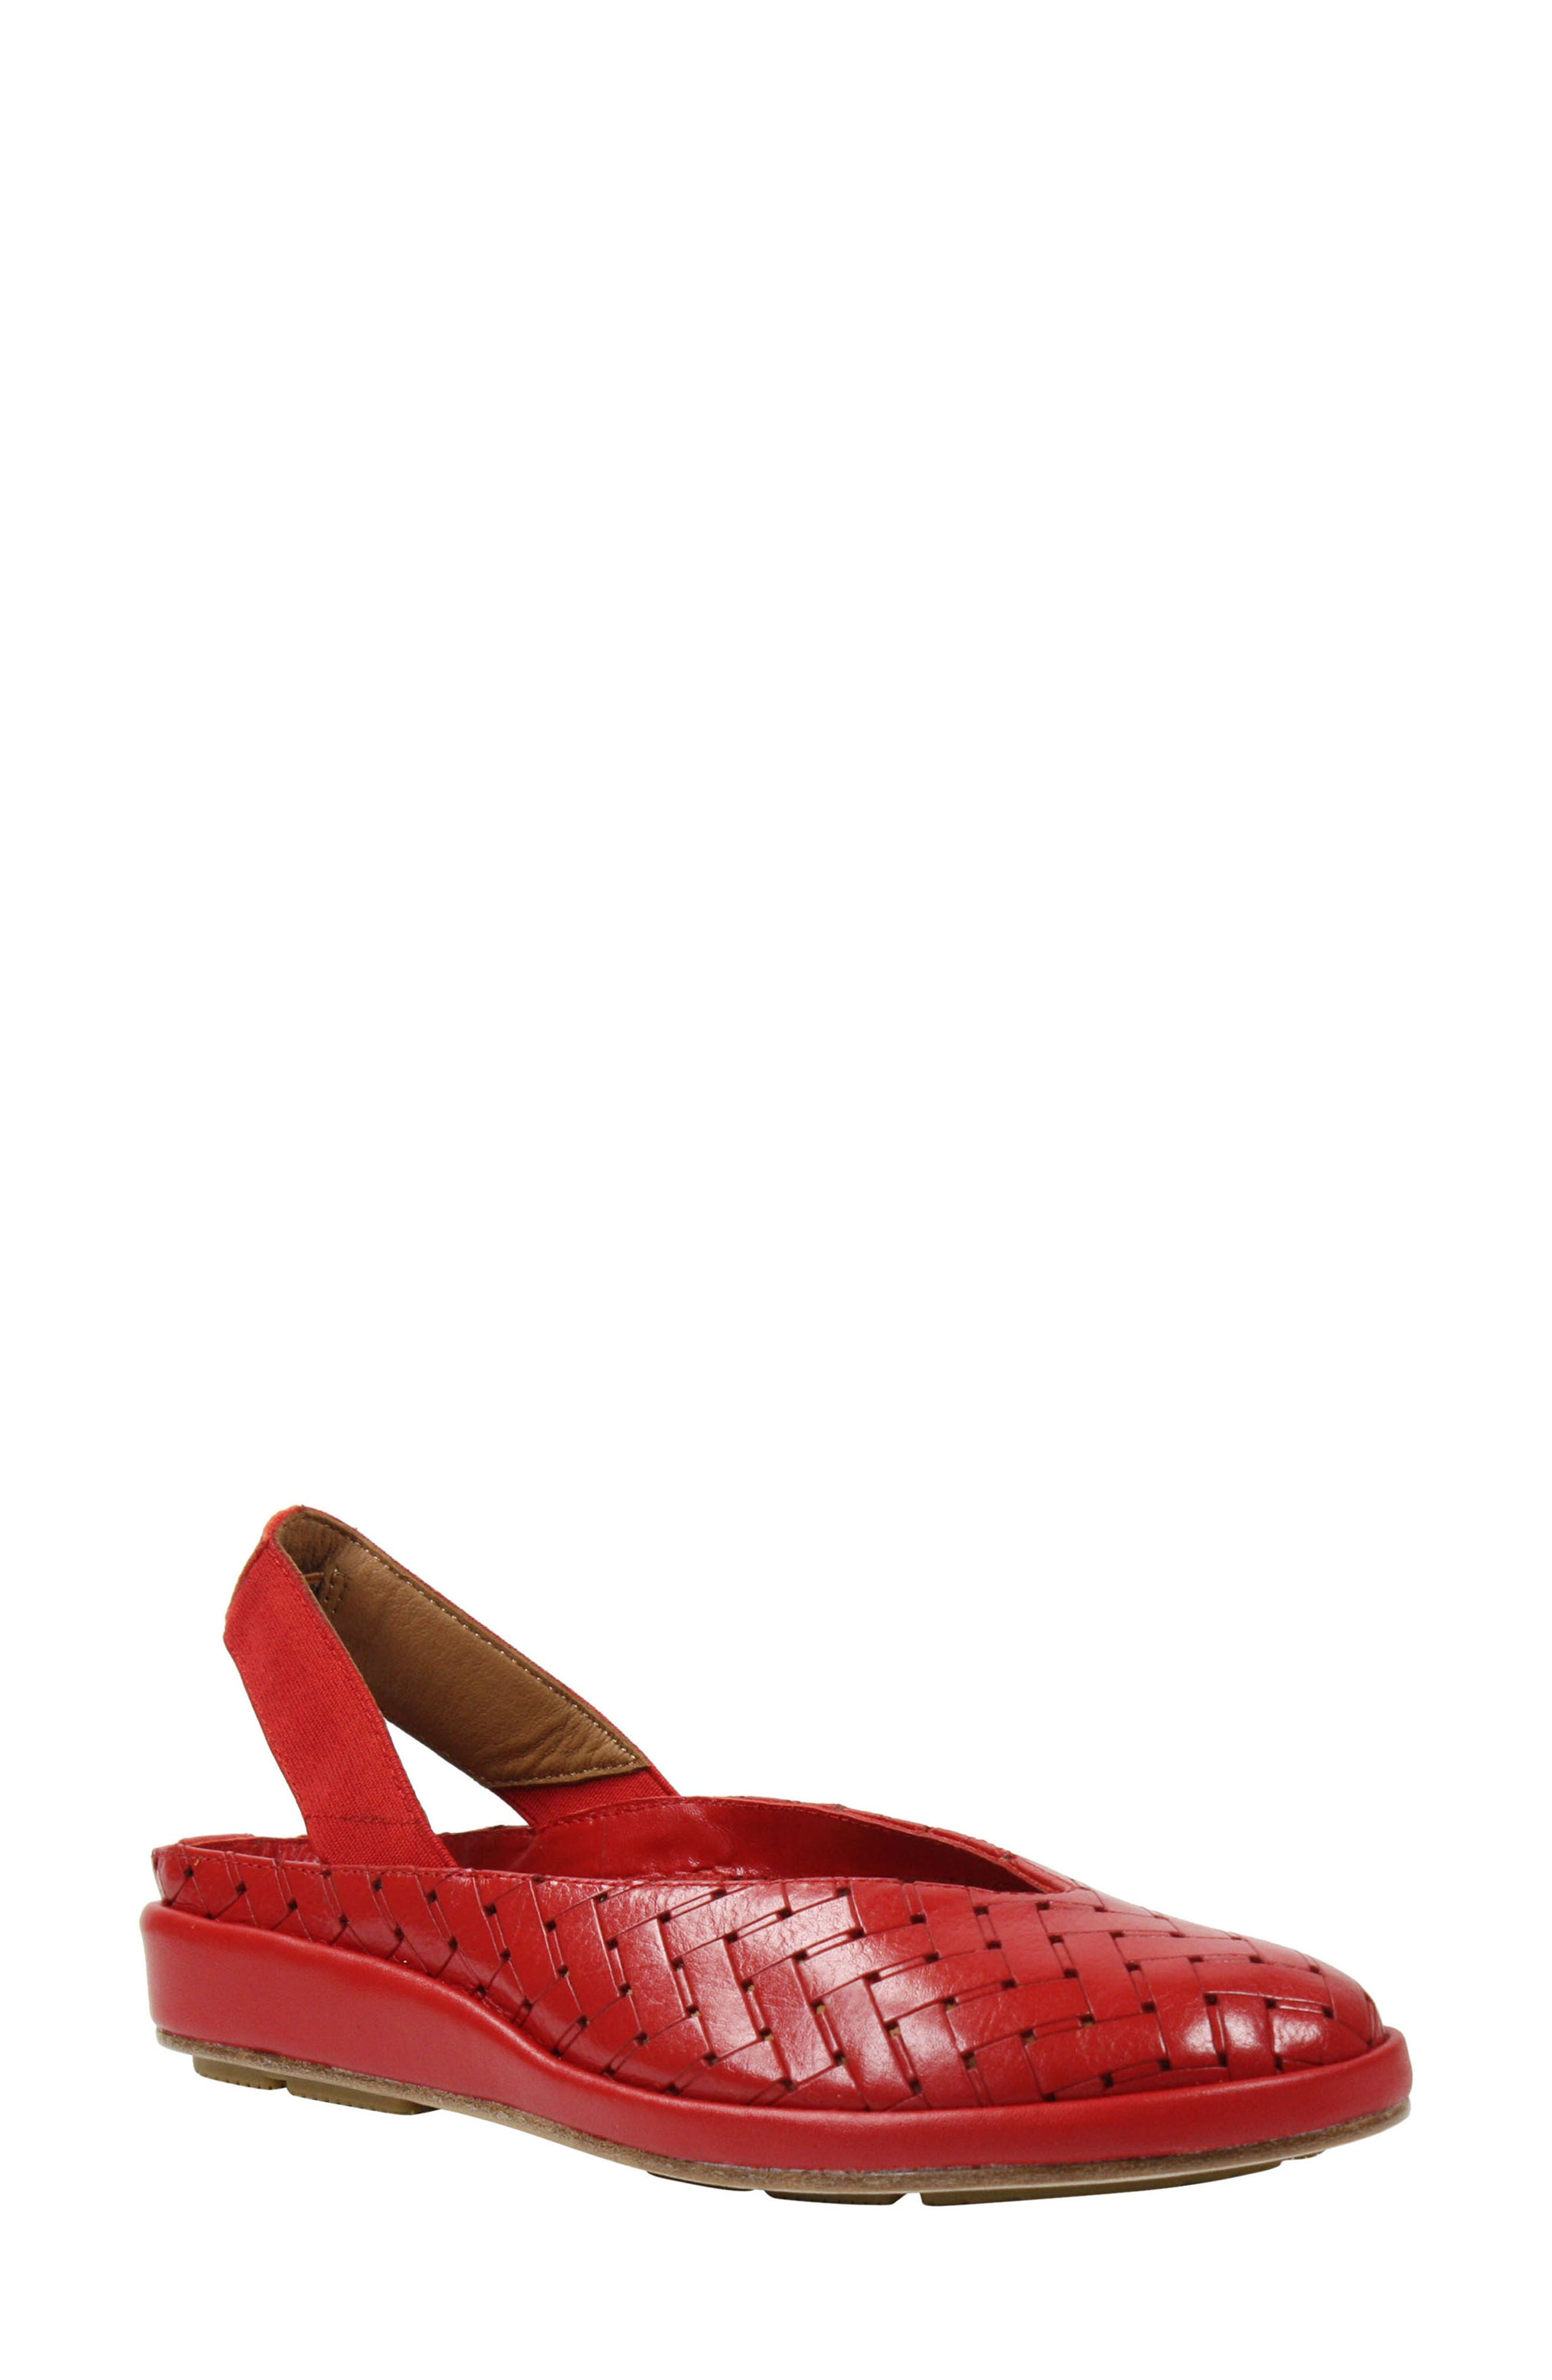 Alternate Image 1 Selected - L'Amour des Pieds 'Cypris' Slingback Wedge (Women)